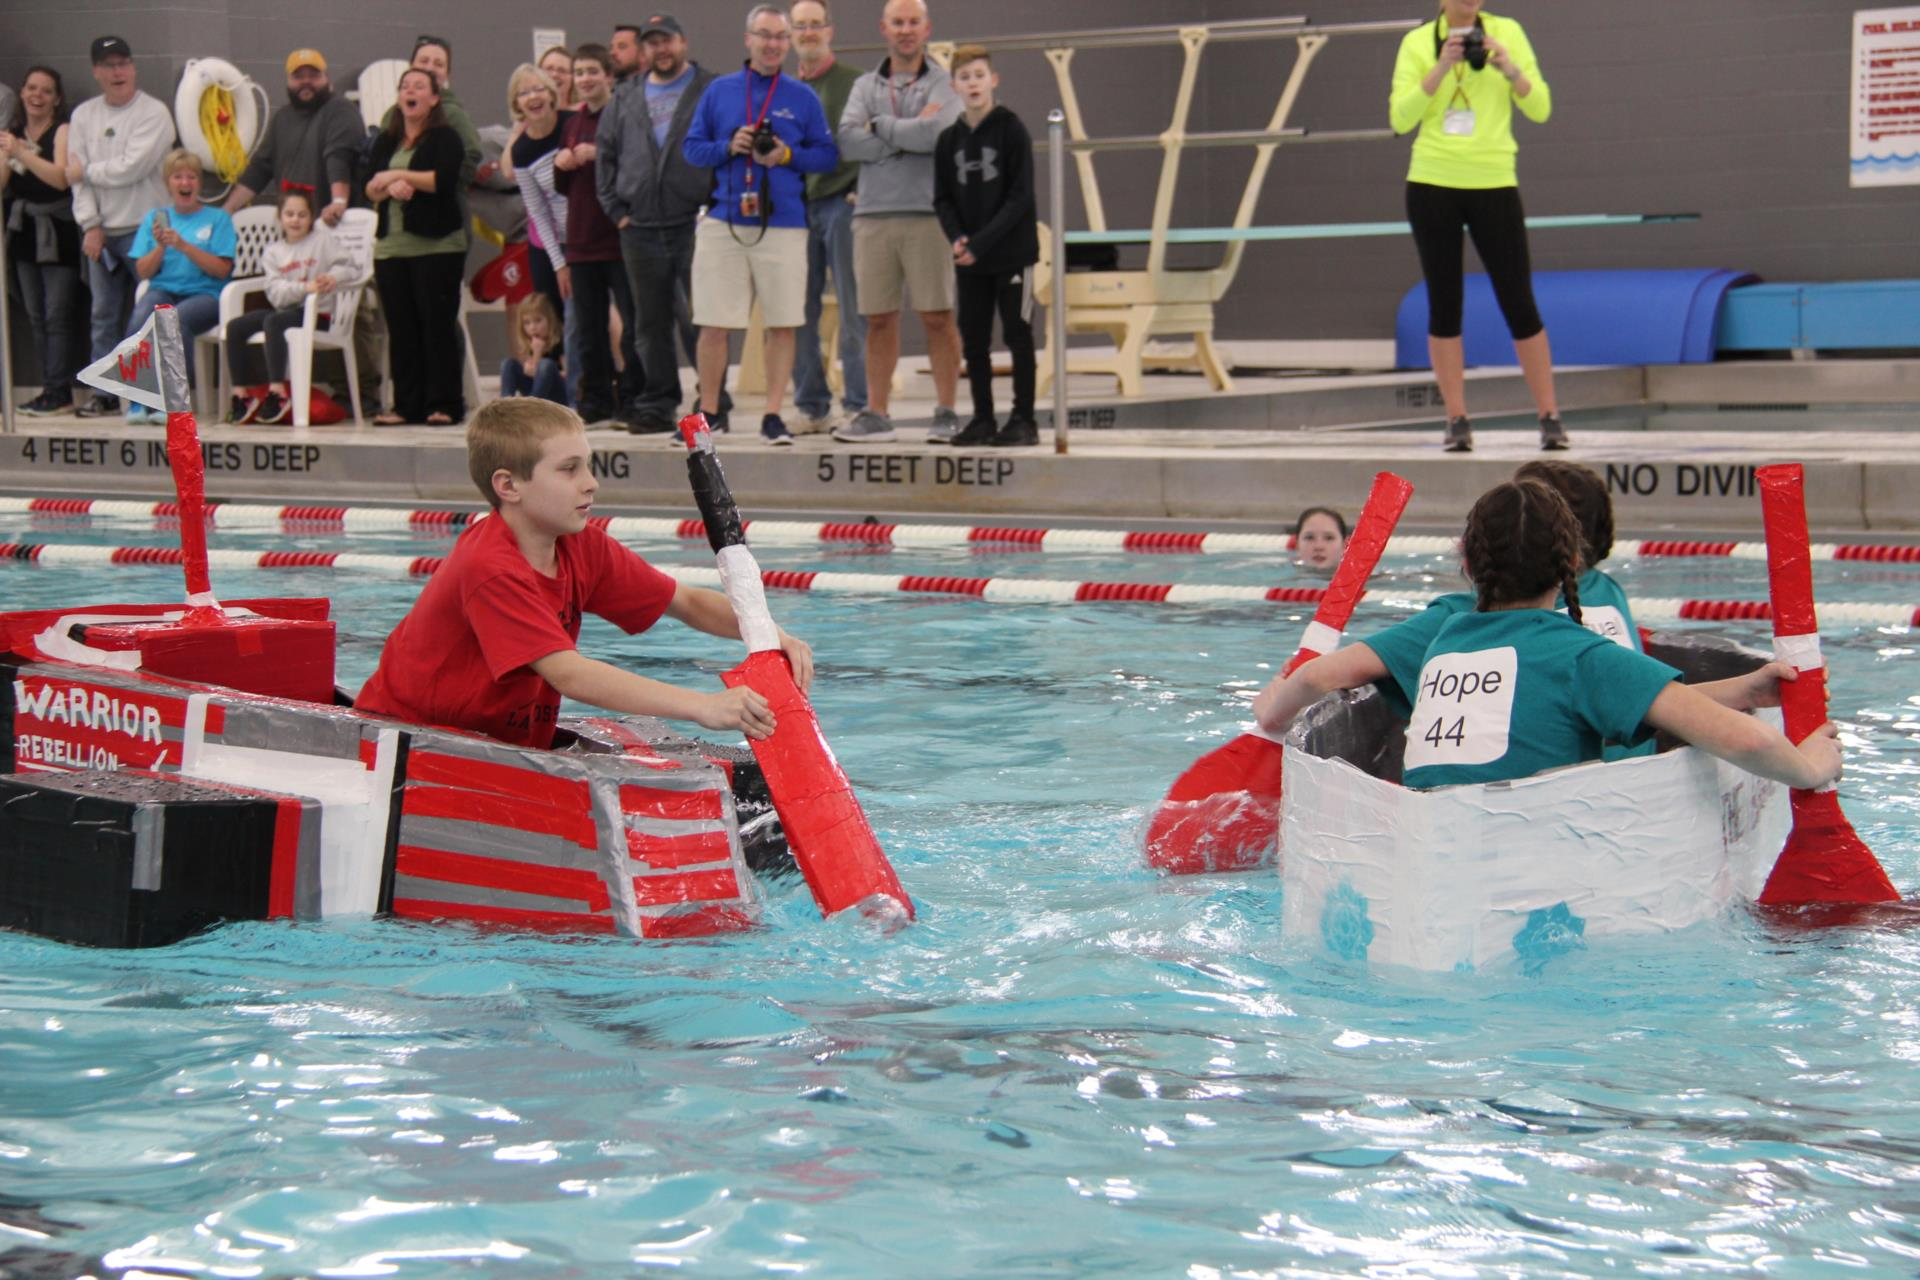 students racing cardboard boats in pool